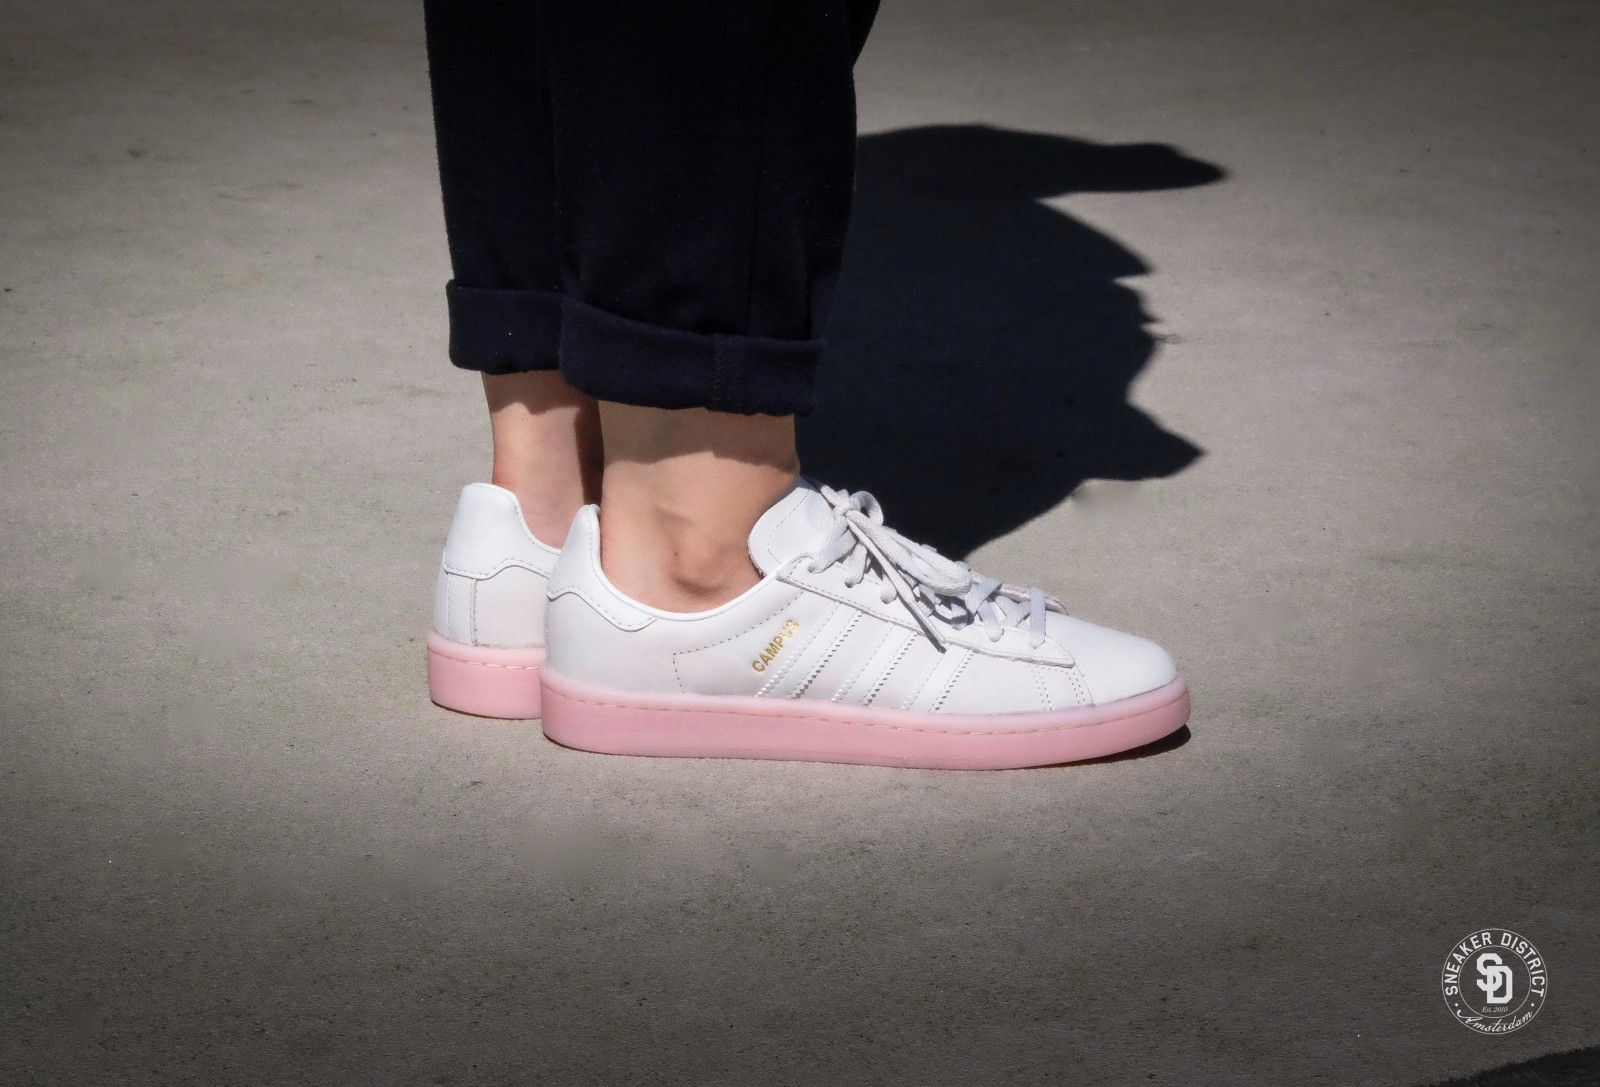 Adidas Campus W - Crystal White/Icey Pink - BY9839